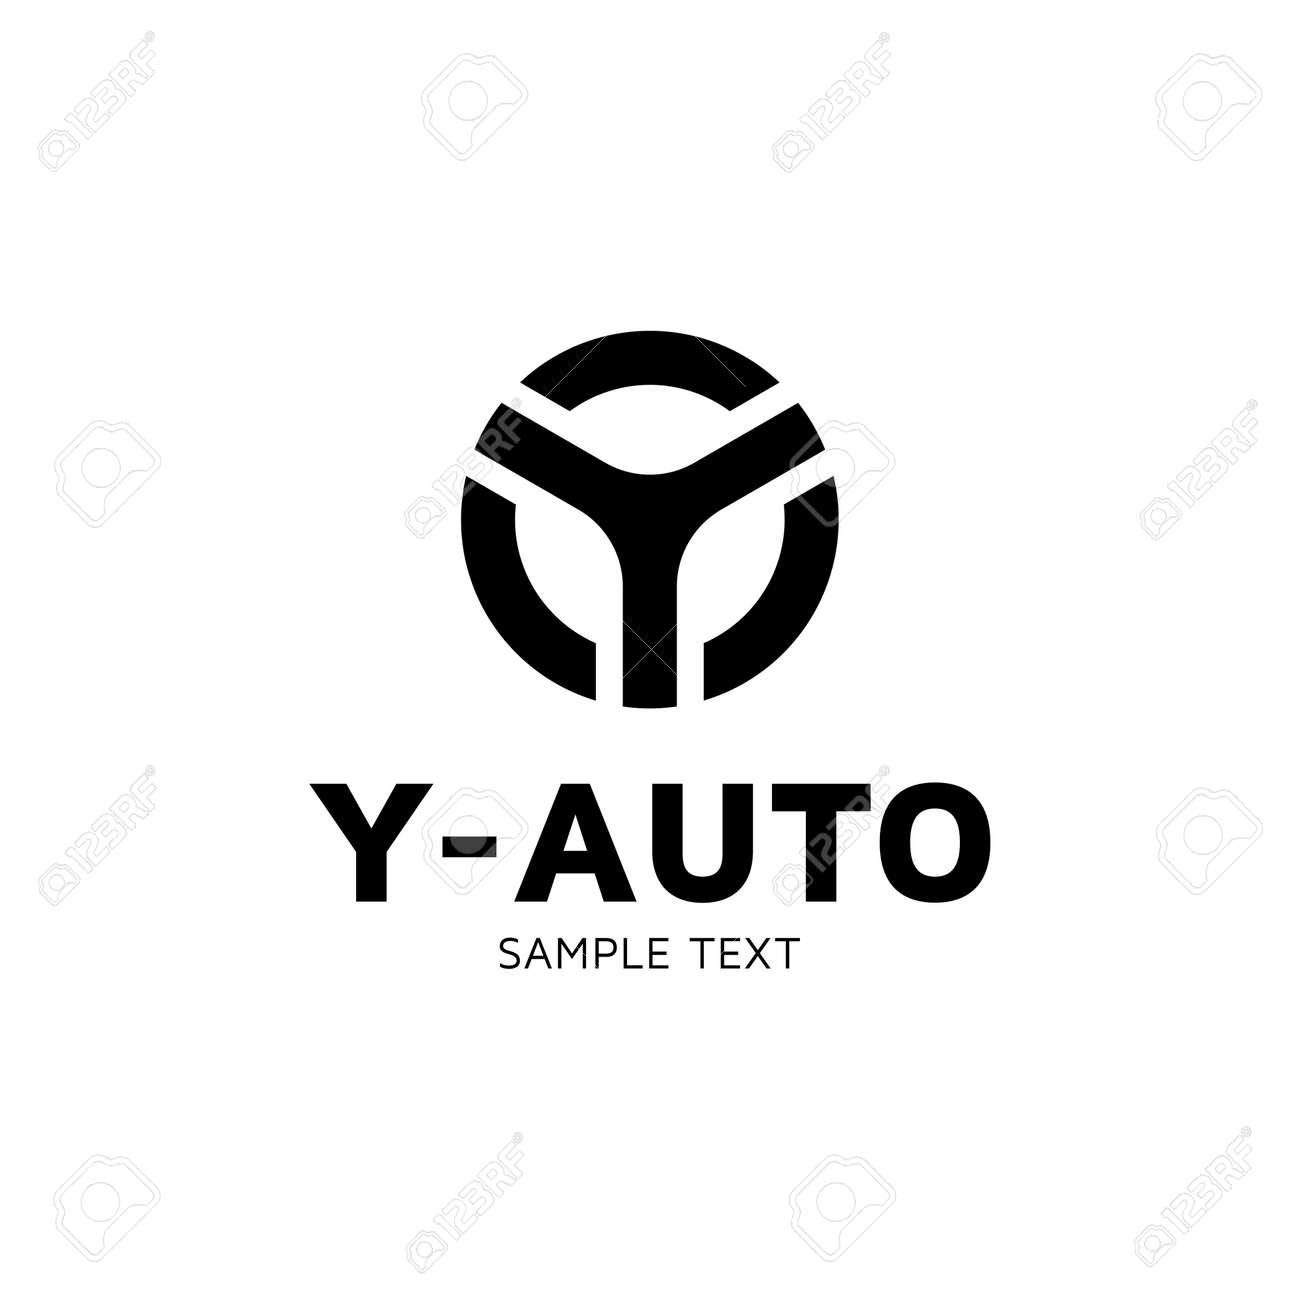 Y Auto Car Wheel Logo Design Template Vector Letter Y Circle Royalty Free Cliparts Vectors And Stock Illustration Image 104616529